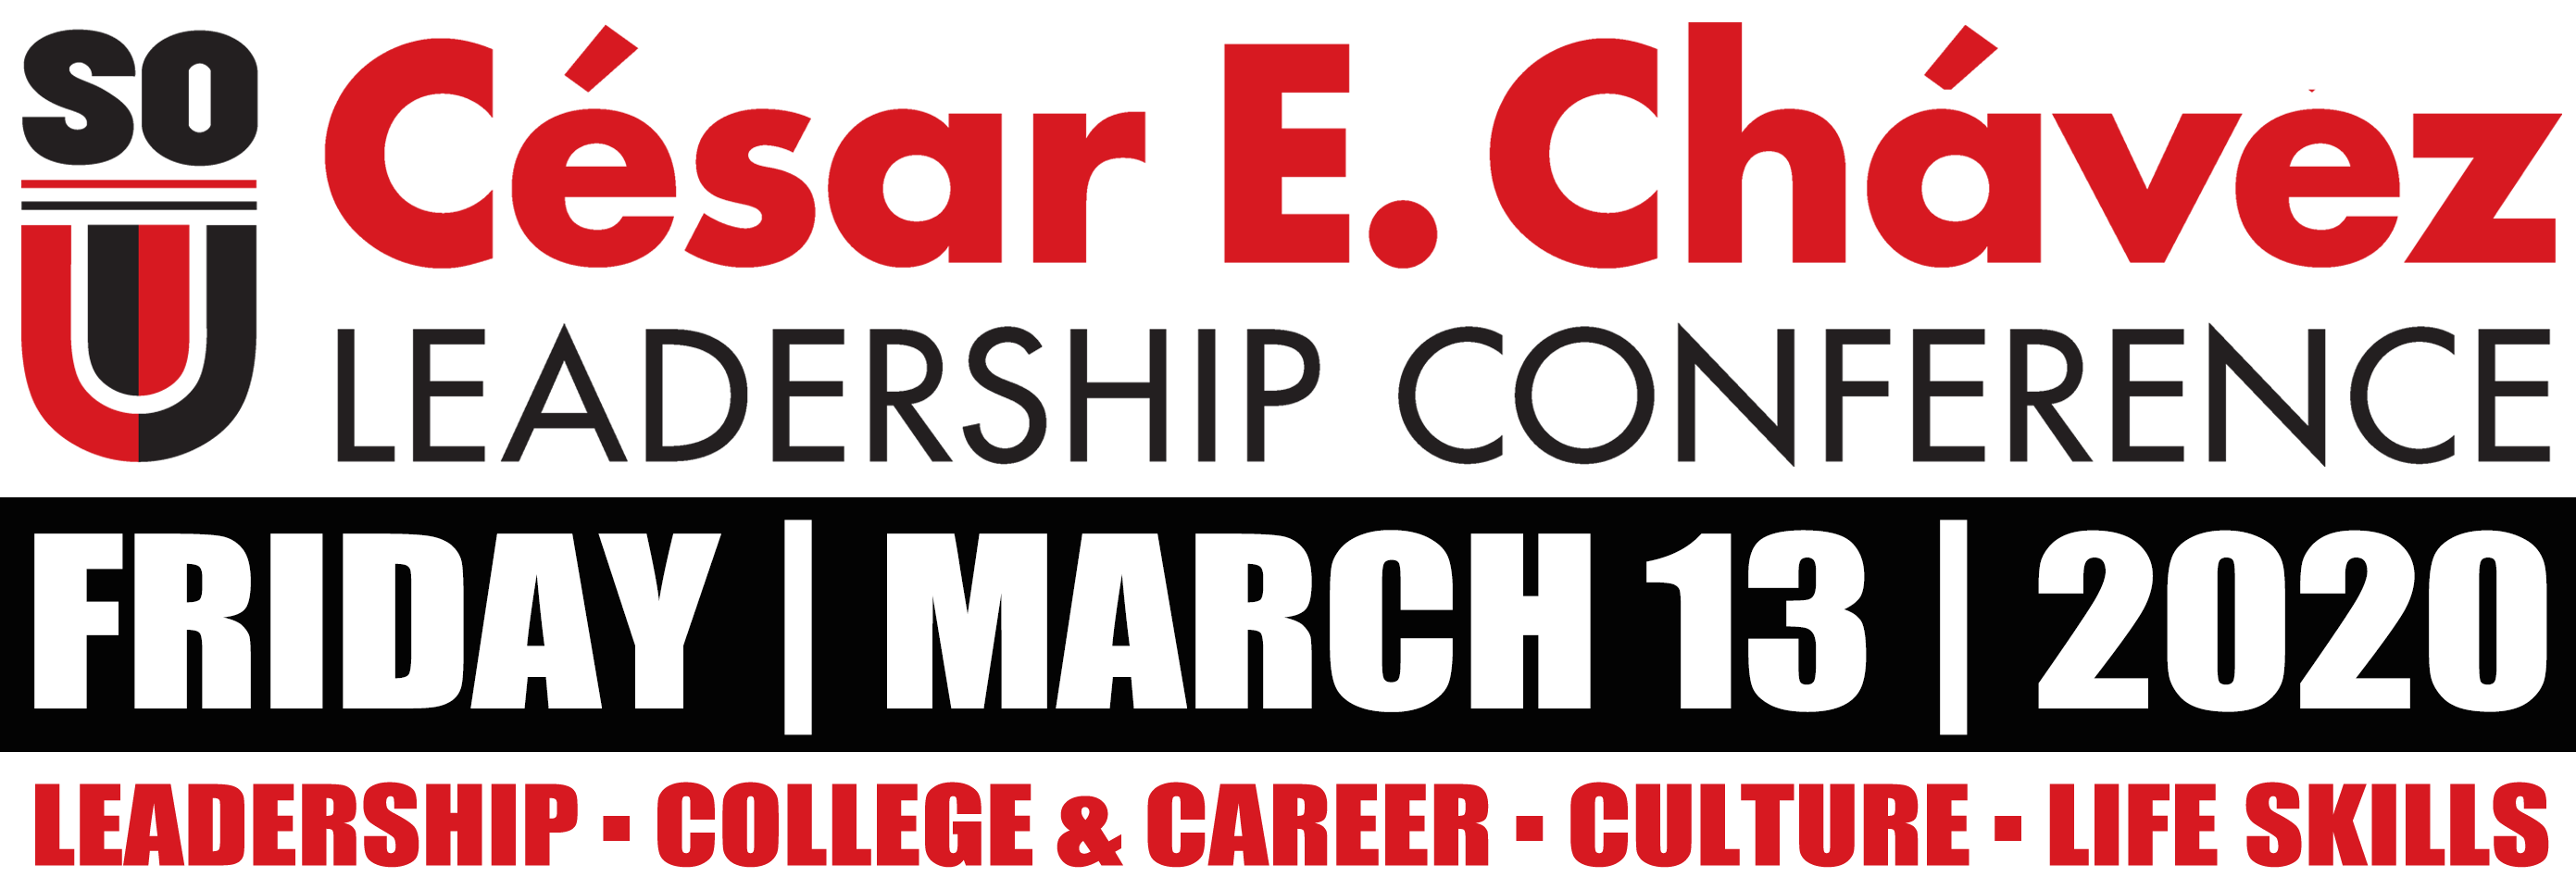 Cesar Chavez Leadership Conference Friday March 13, 2020. Leadership, College and Career, Lifeskills